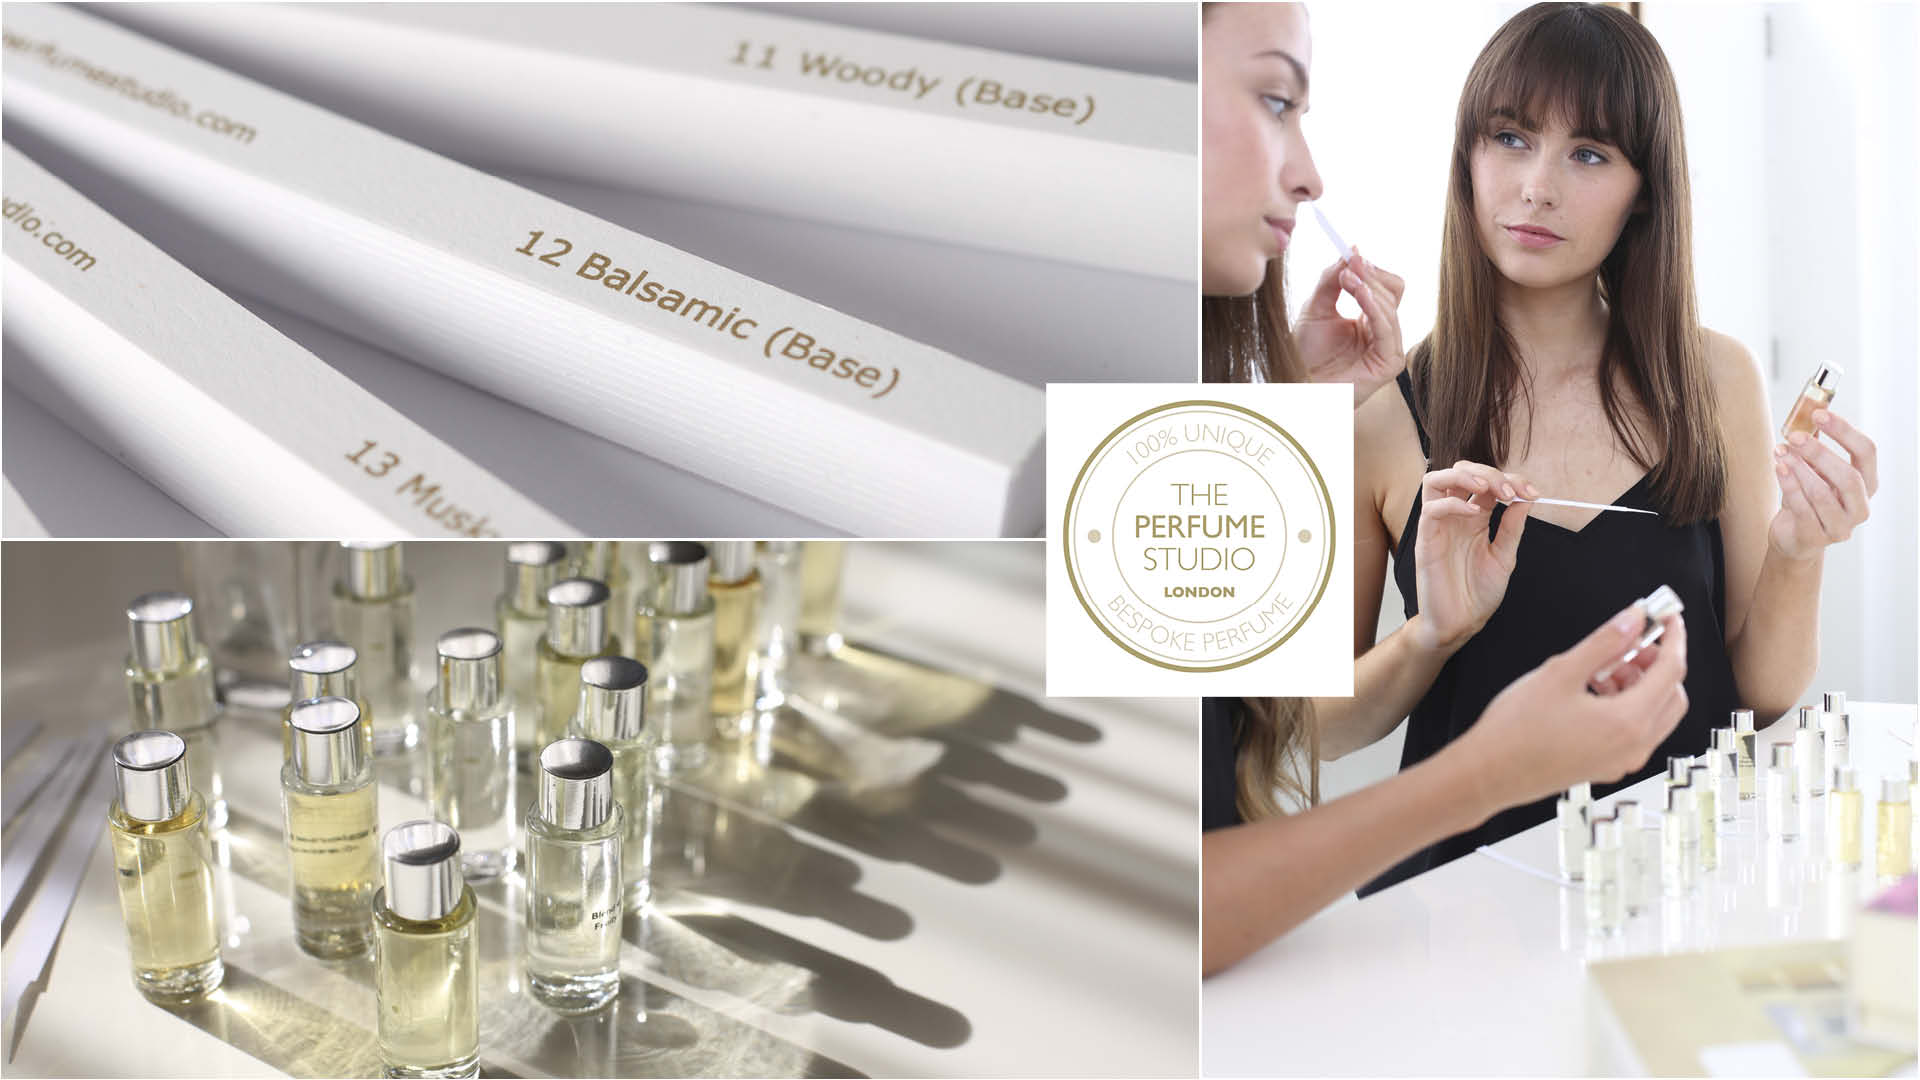 Win a luxury fragrance design experience for two worth £118!